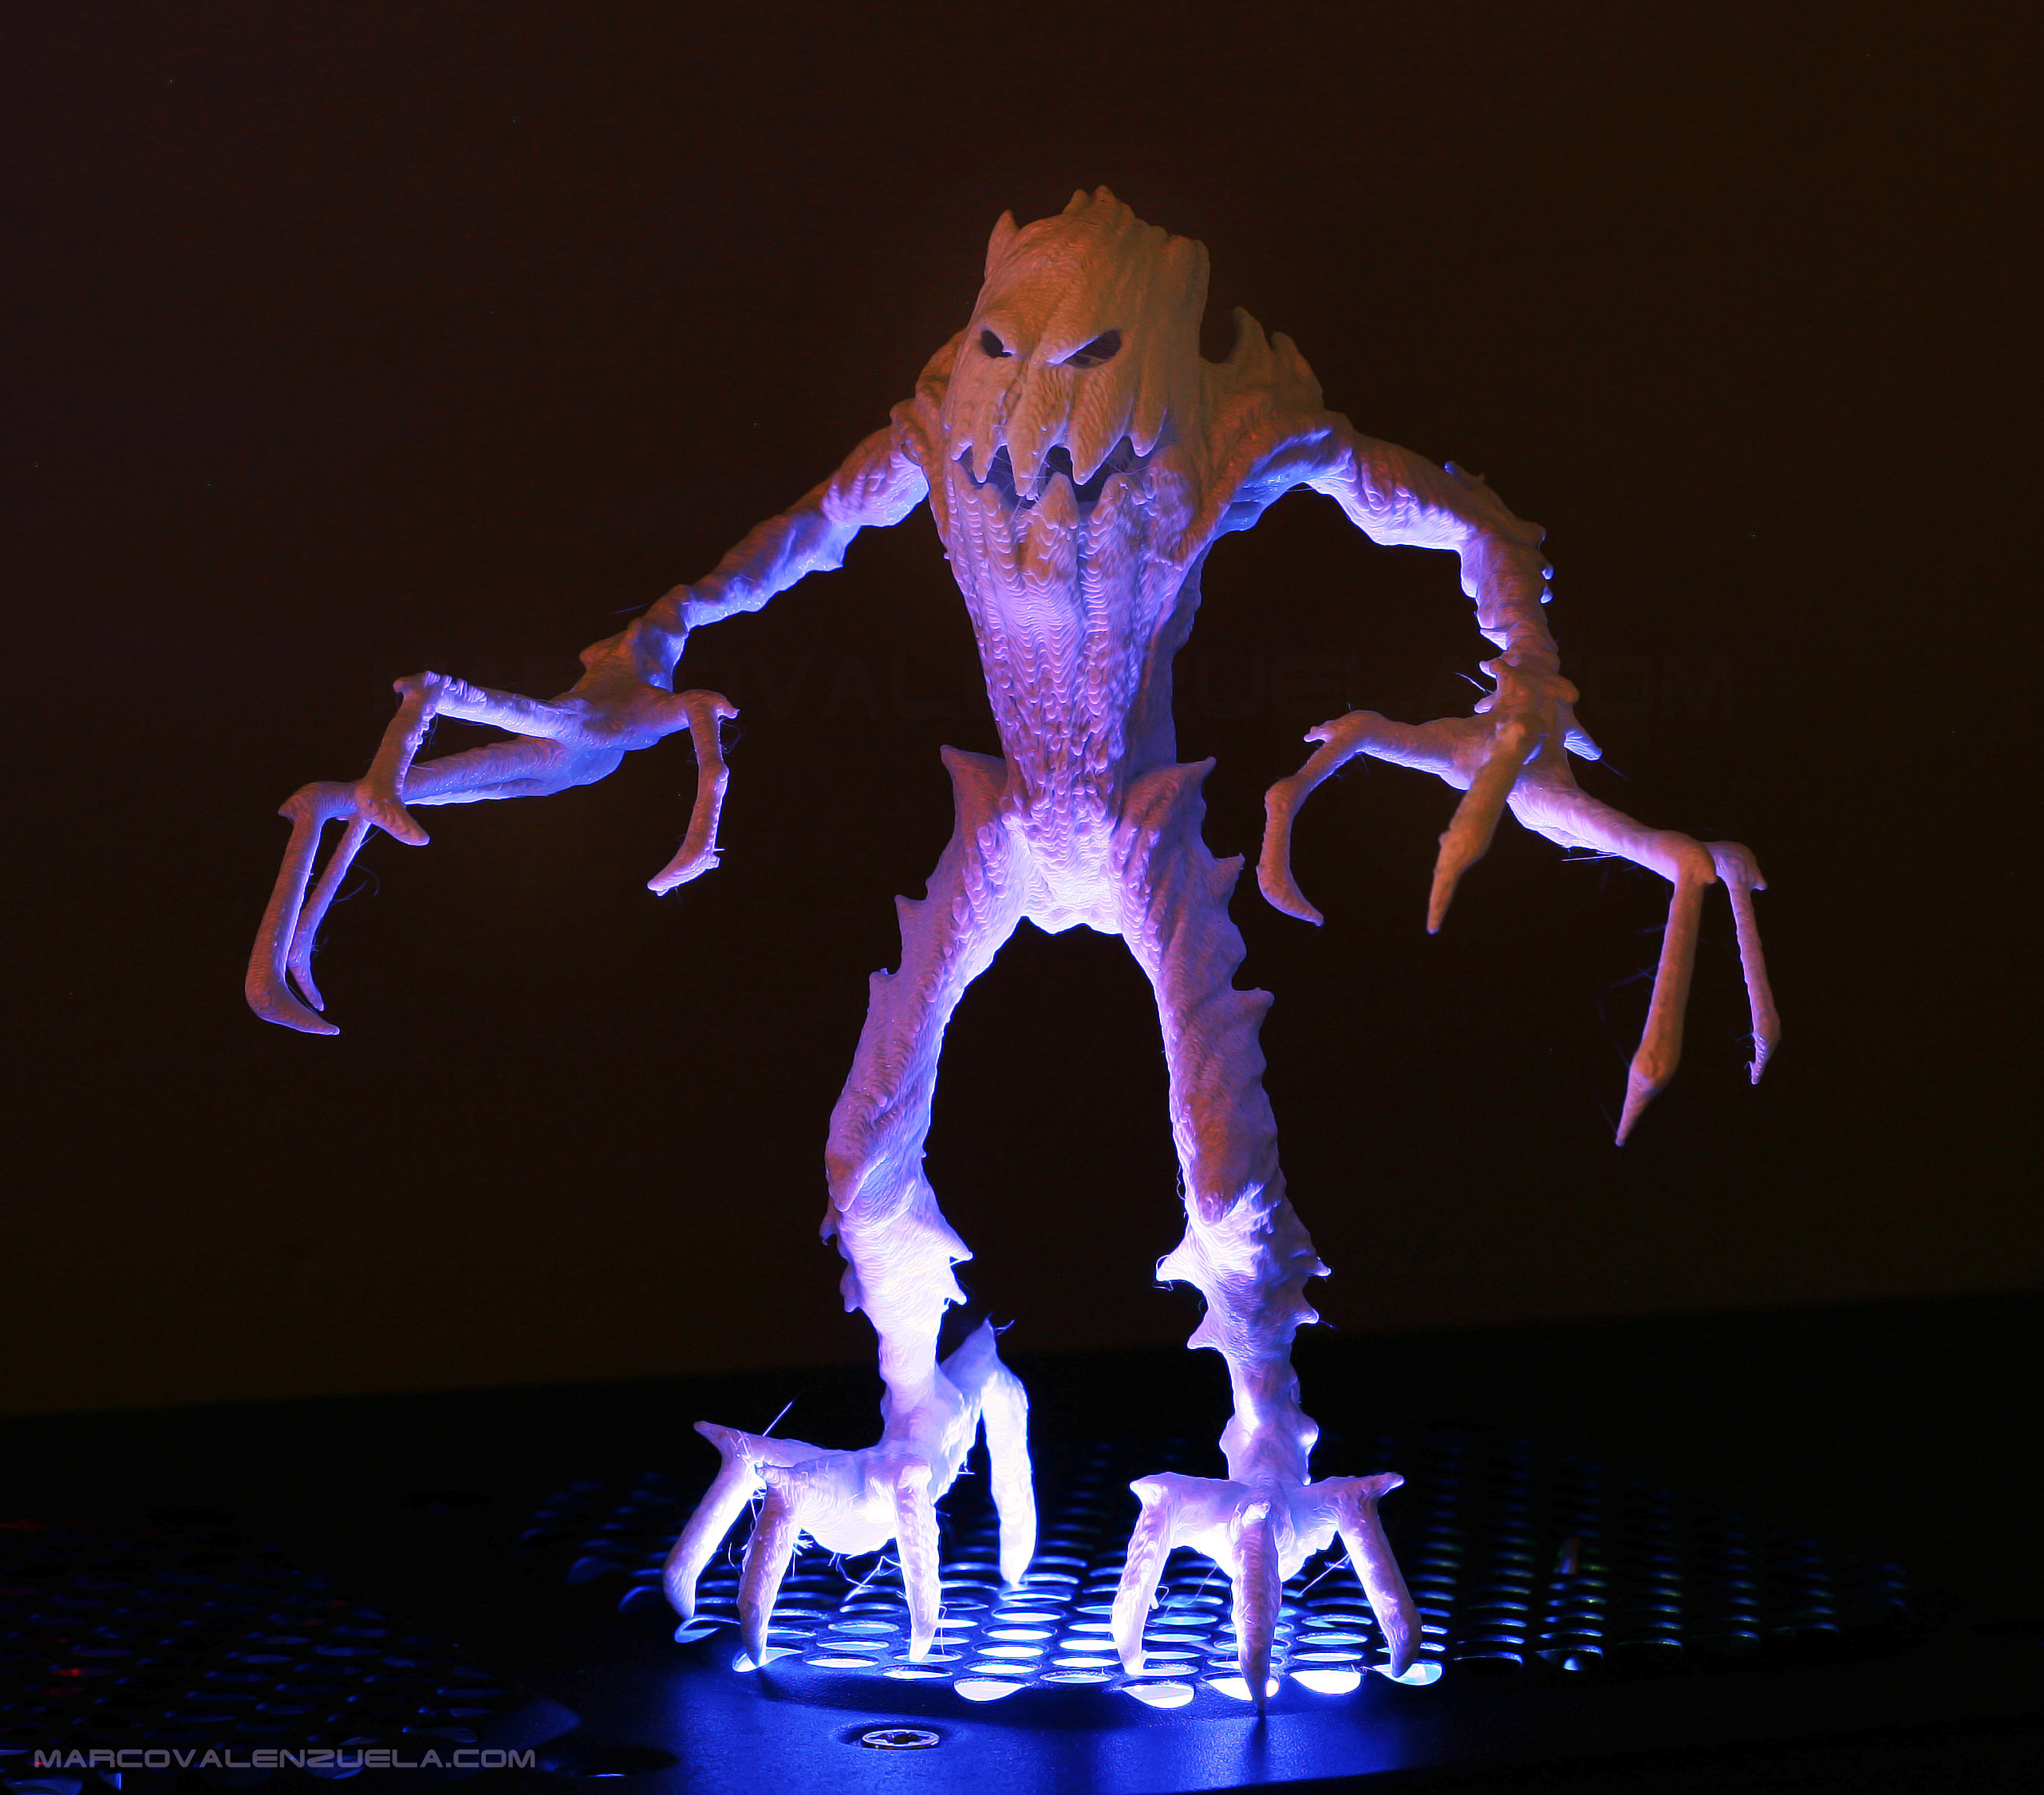 Picture of print of Pumpkin's Wraith Figurine This print has been uploaded by Marco Valenzuela